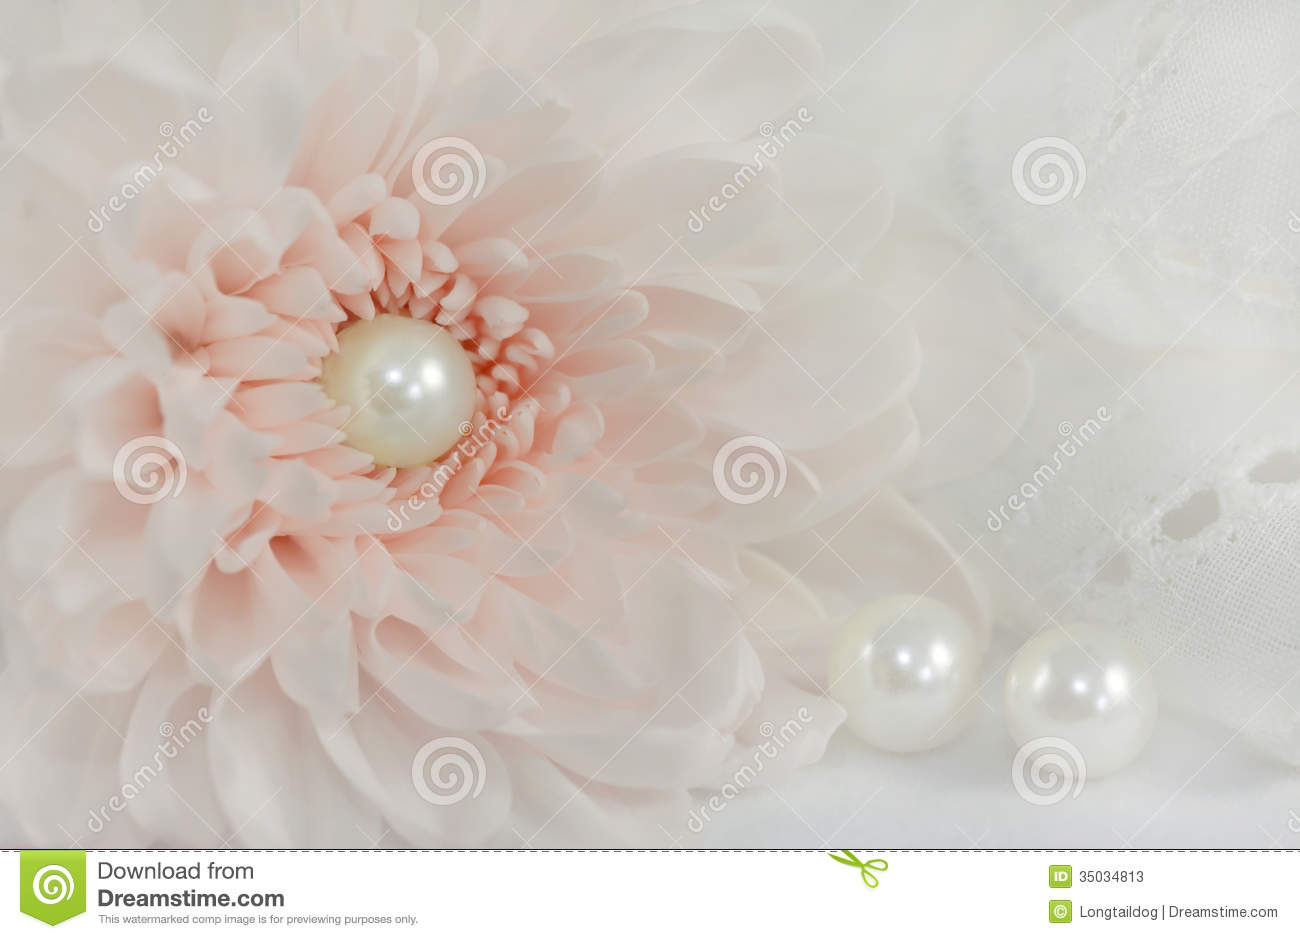 Romantic Abstract Background Stock Photos - Image: 35034813